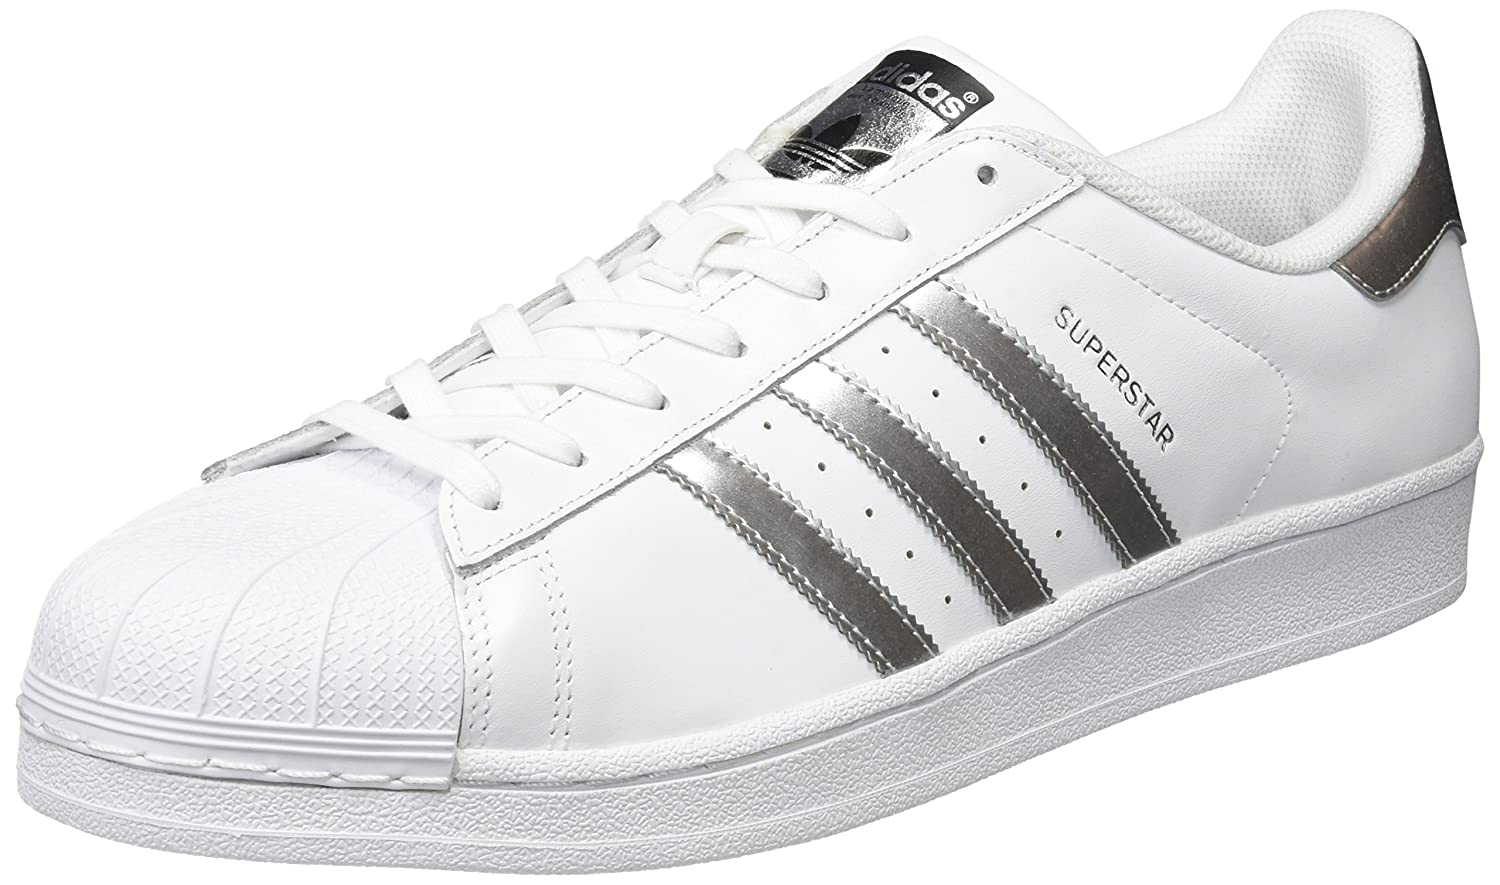 sneakers for cheap dbb85 9fbf3 Adidas Originals Superstar Foundation Scarpe da Ginnastica Unisex - Adulto